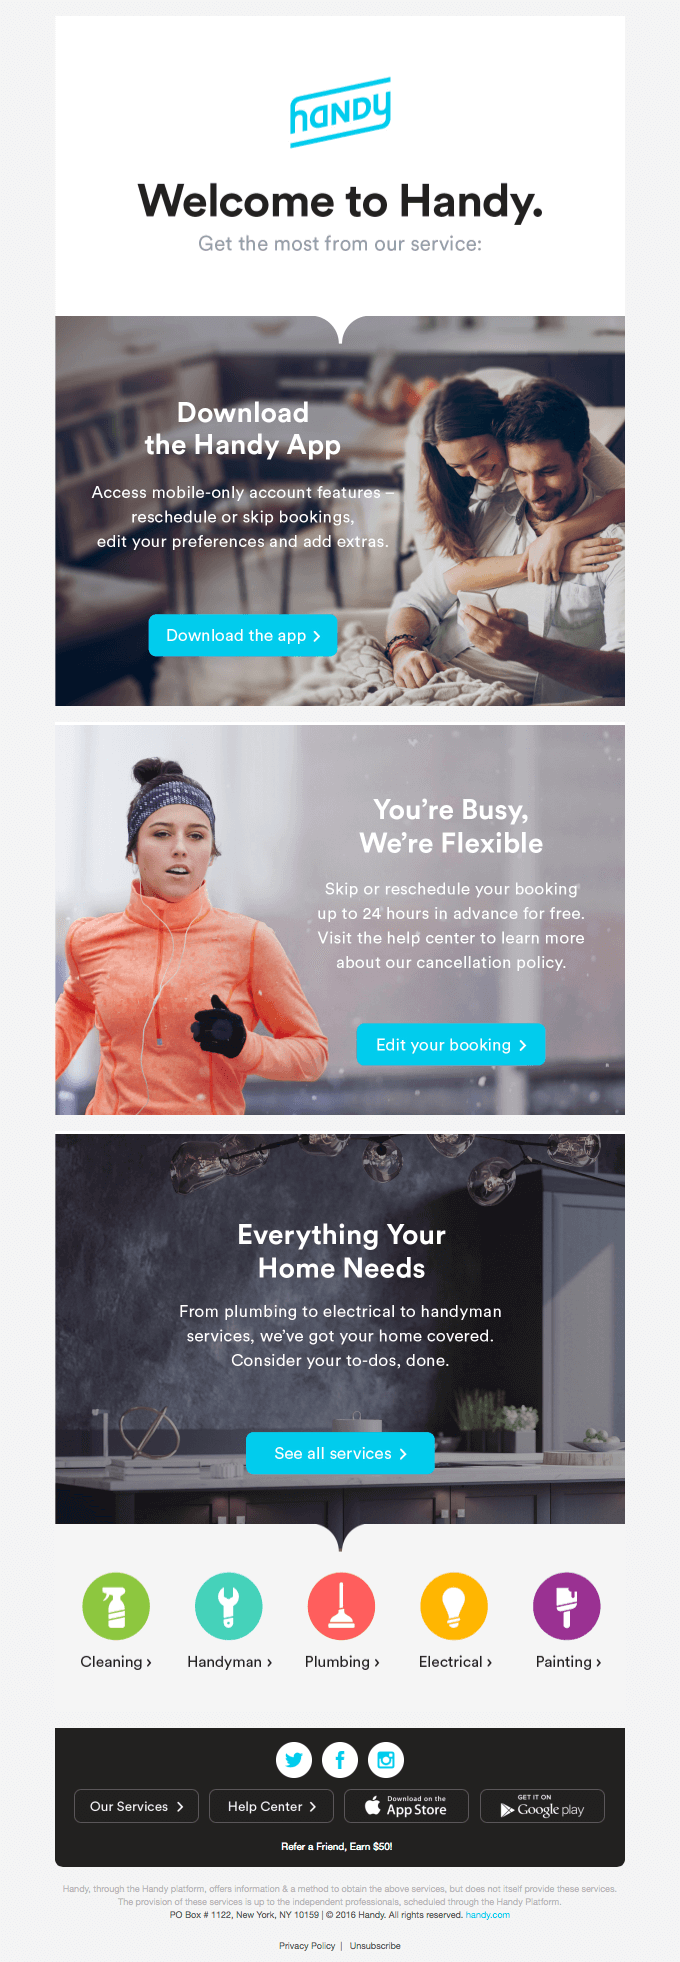 13 of the best examples of beautiful email design handy email exampleg pronofoot35fo Gallery